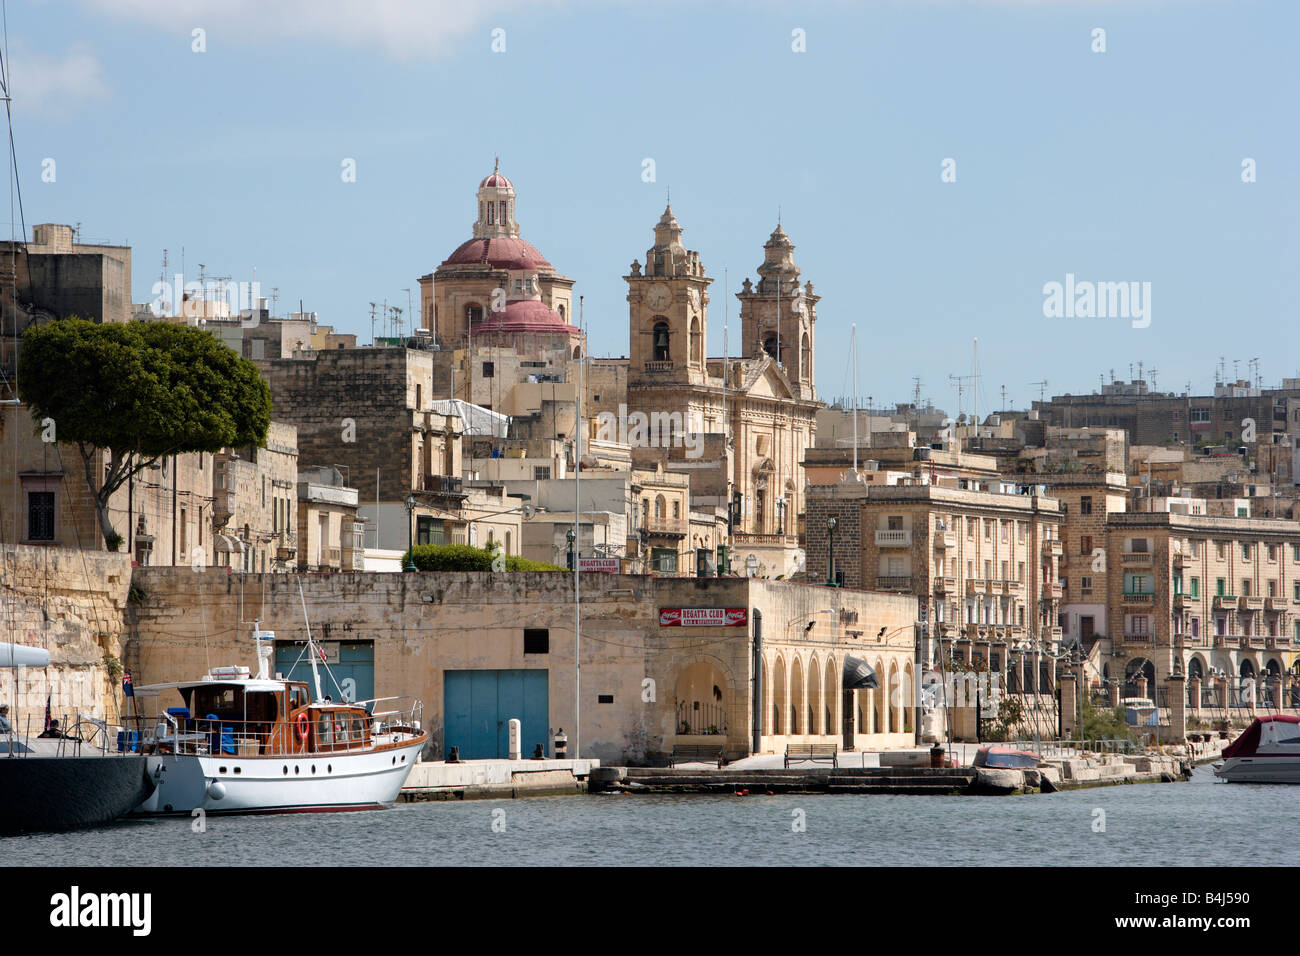 Cospicua and the Church of the Immaculate Conception, Malta - Stock Image